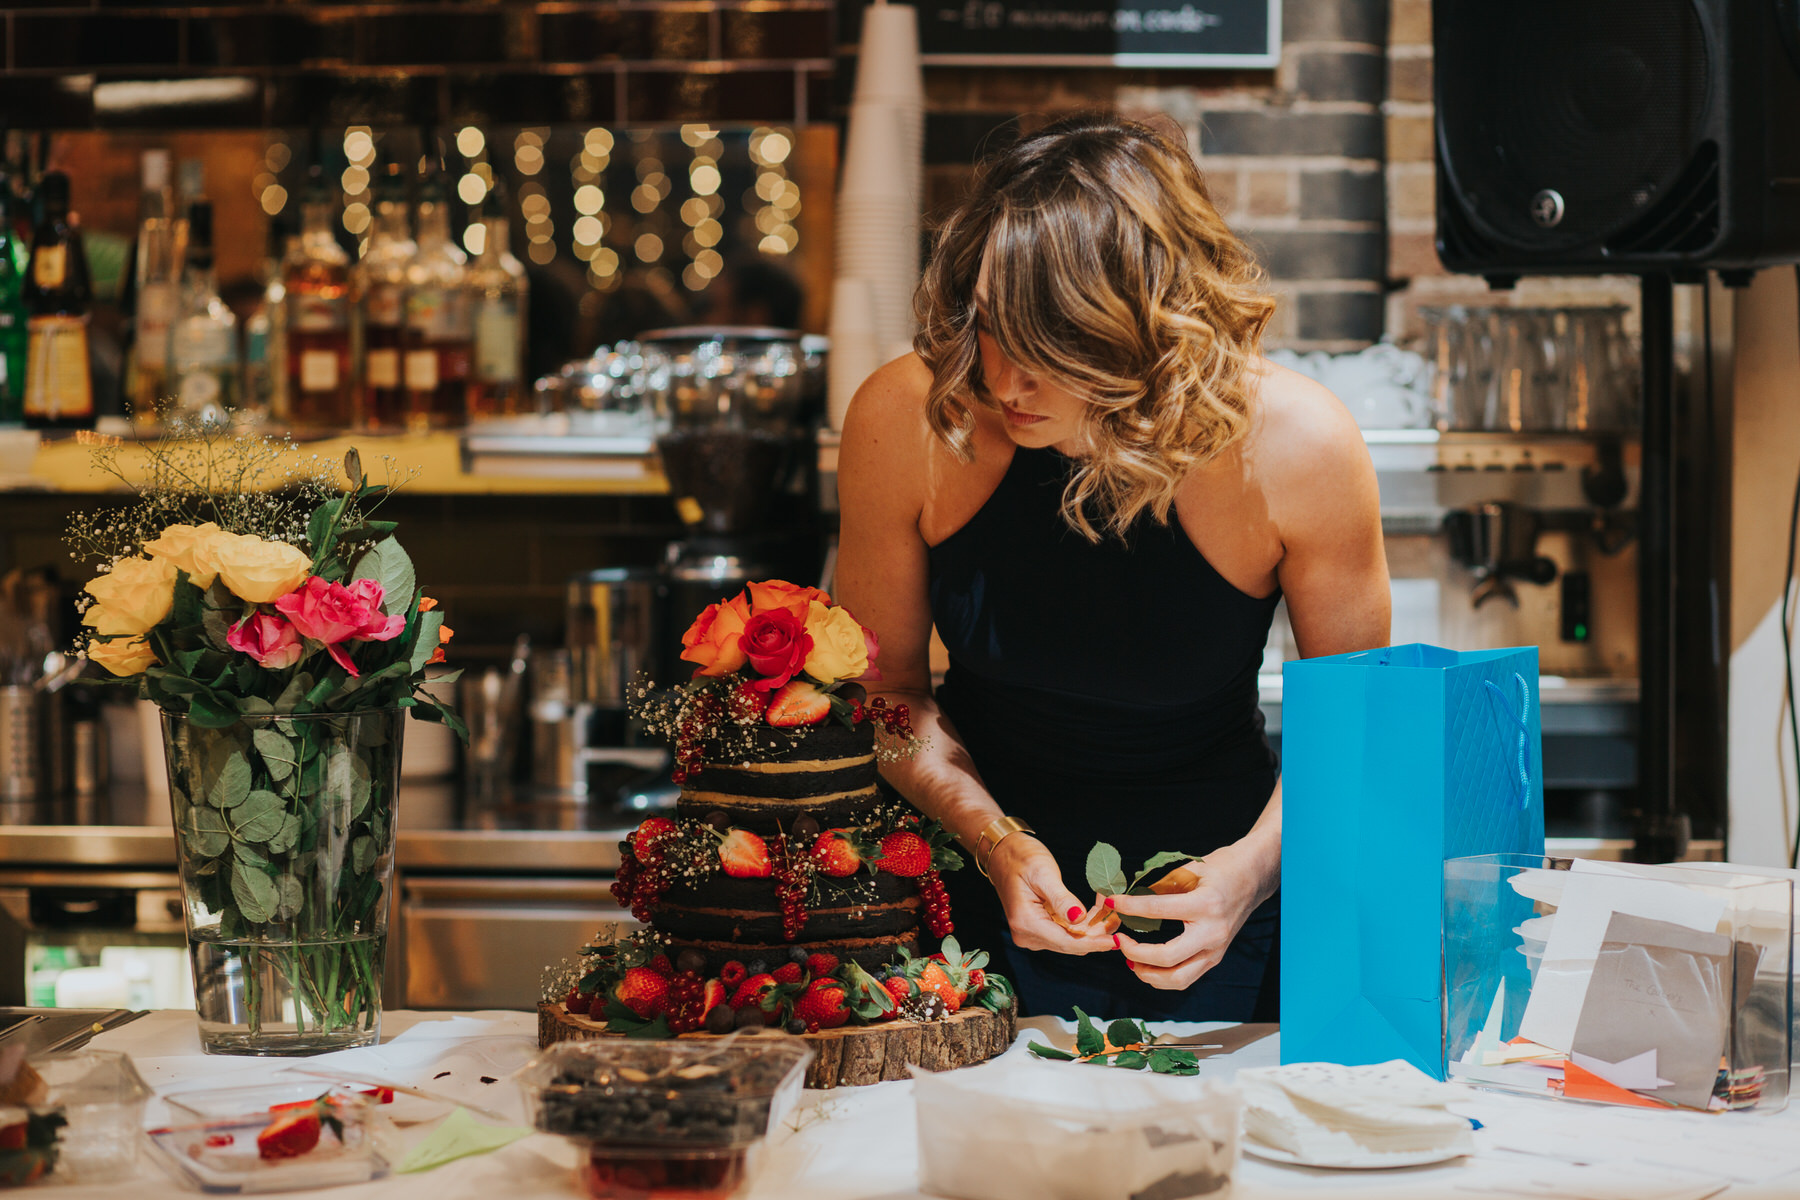 145-St Chads Place wedding chocolate cake decorated by guest fresh roses strawberries.jpg